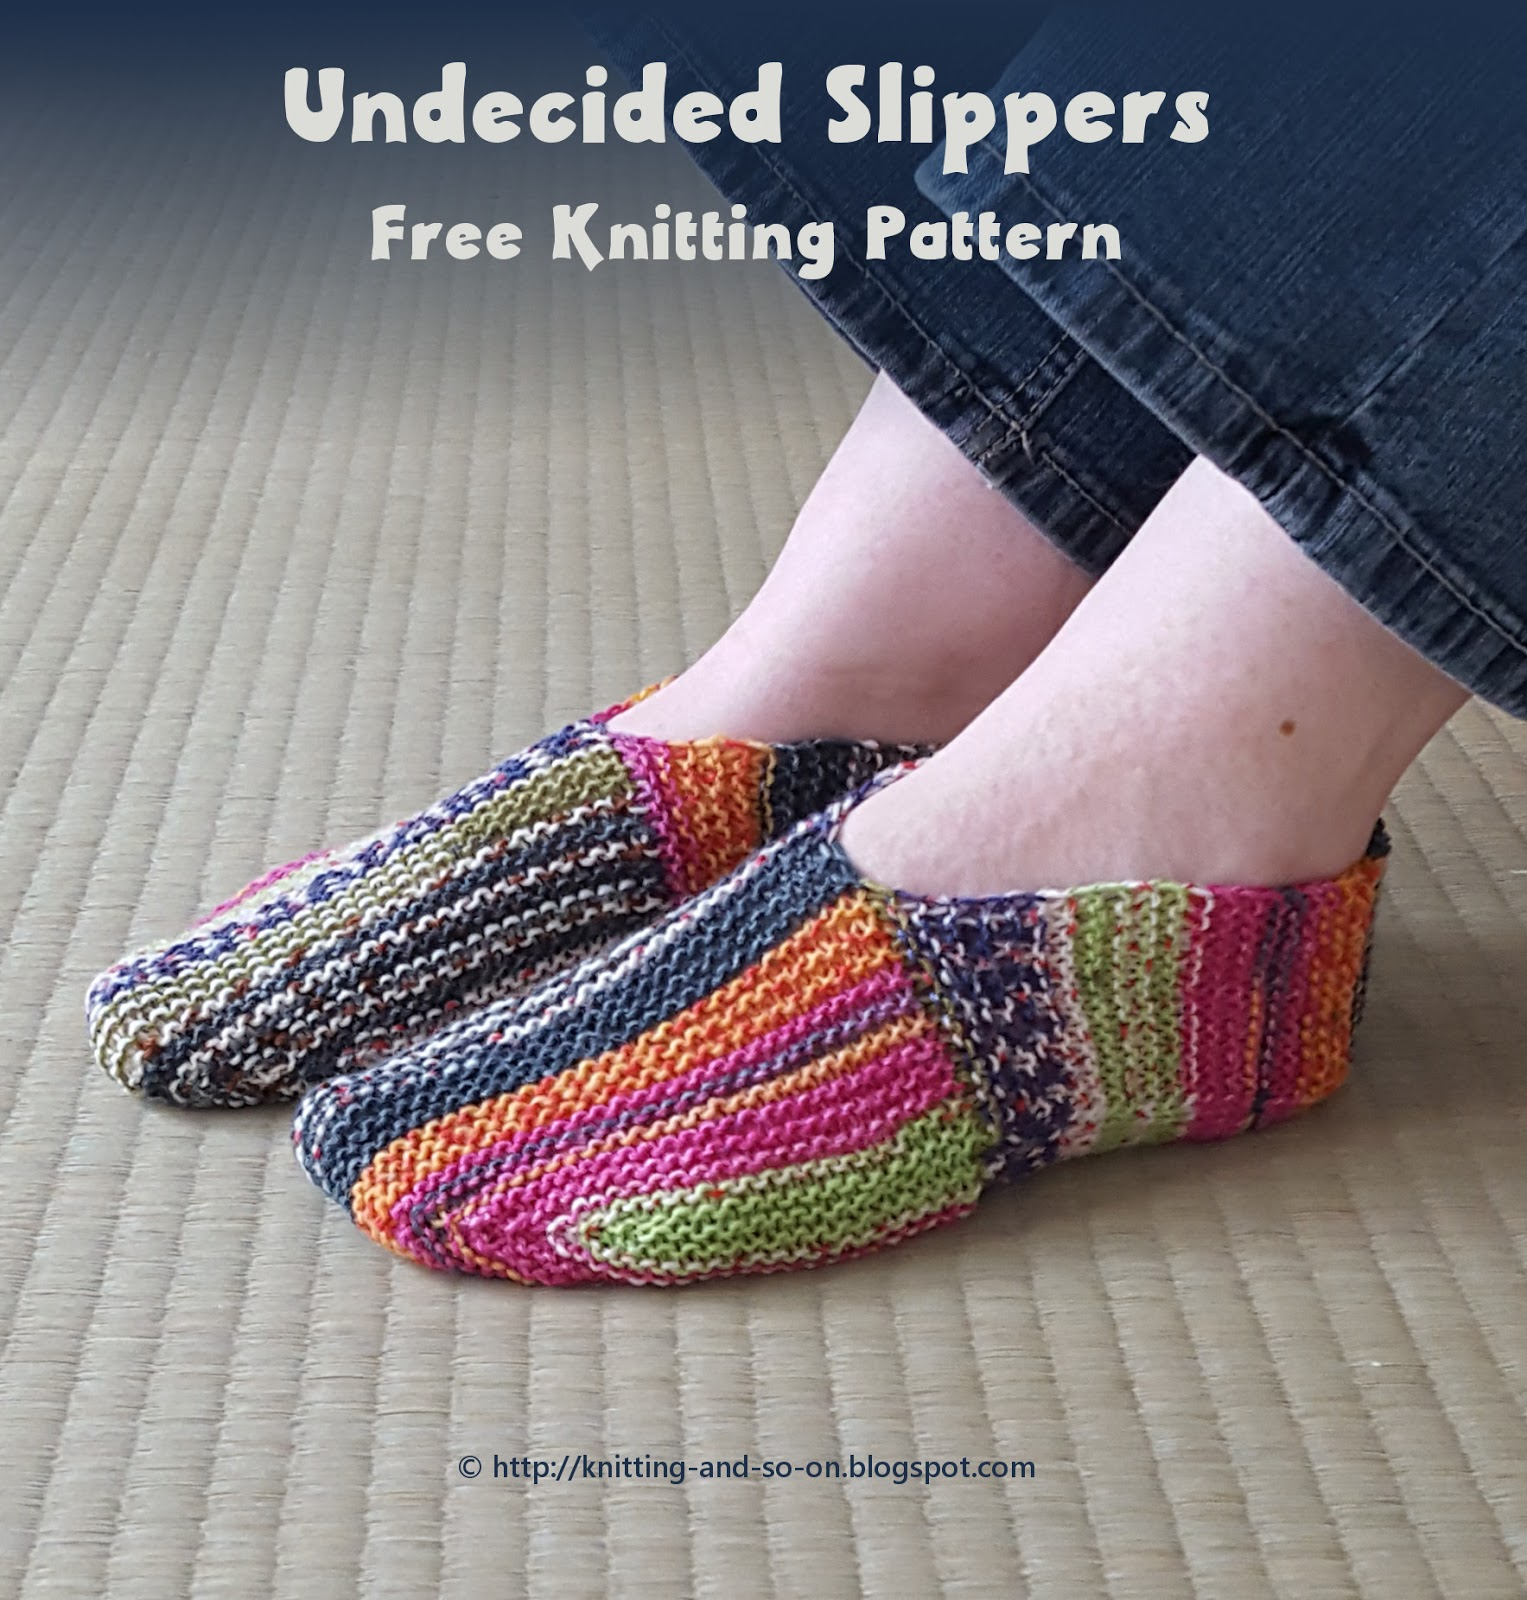 Free Knit Slipper Pattern Knitting And So On Undecided Slippers